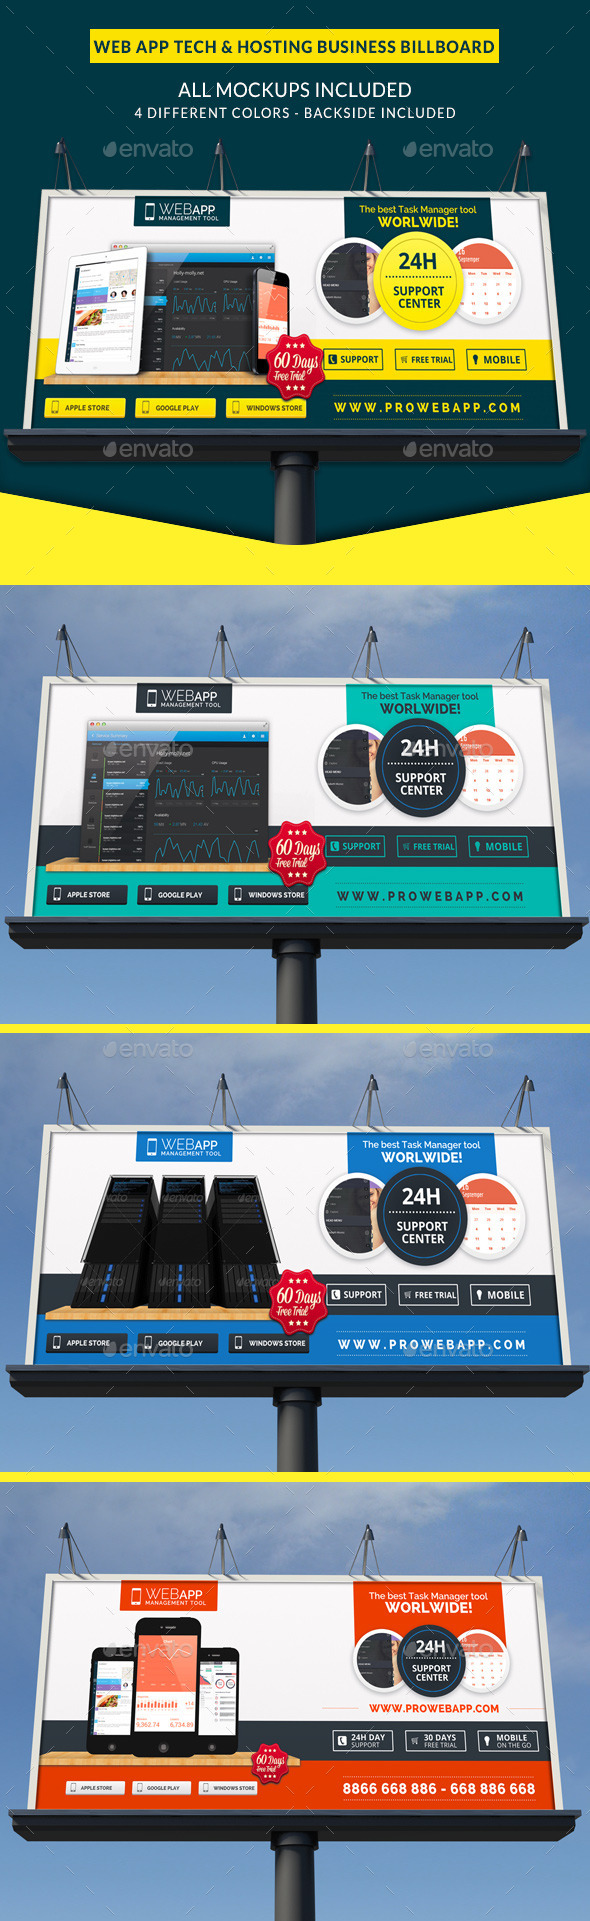 GraphicRiver Web App Tech & Hosting Business Signage Billboard 10579091